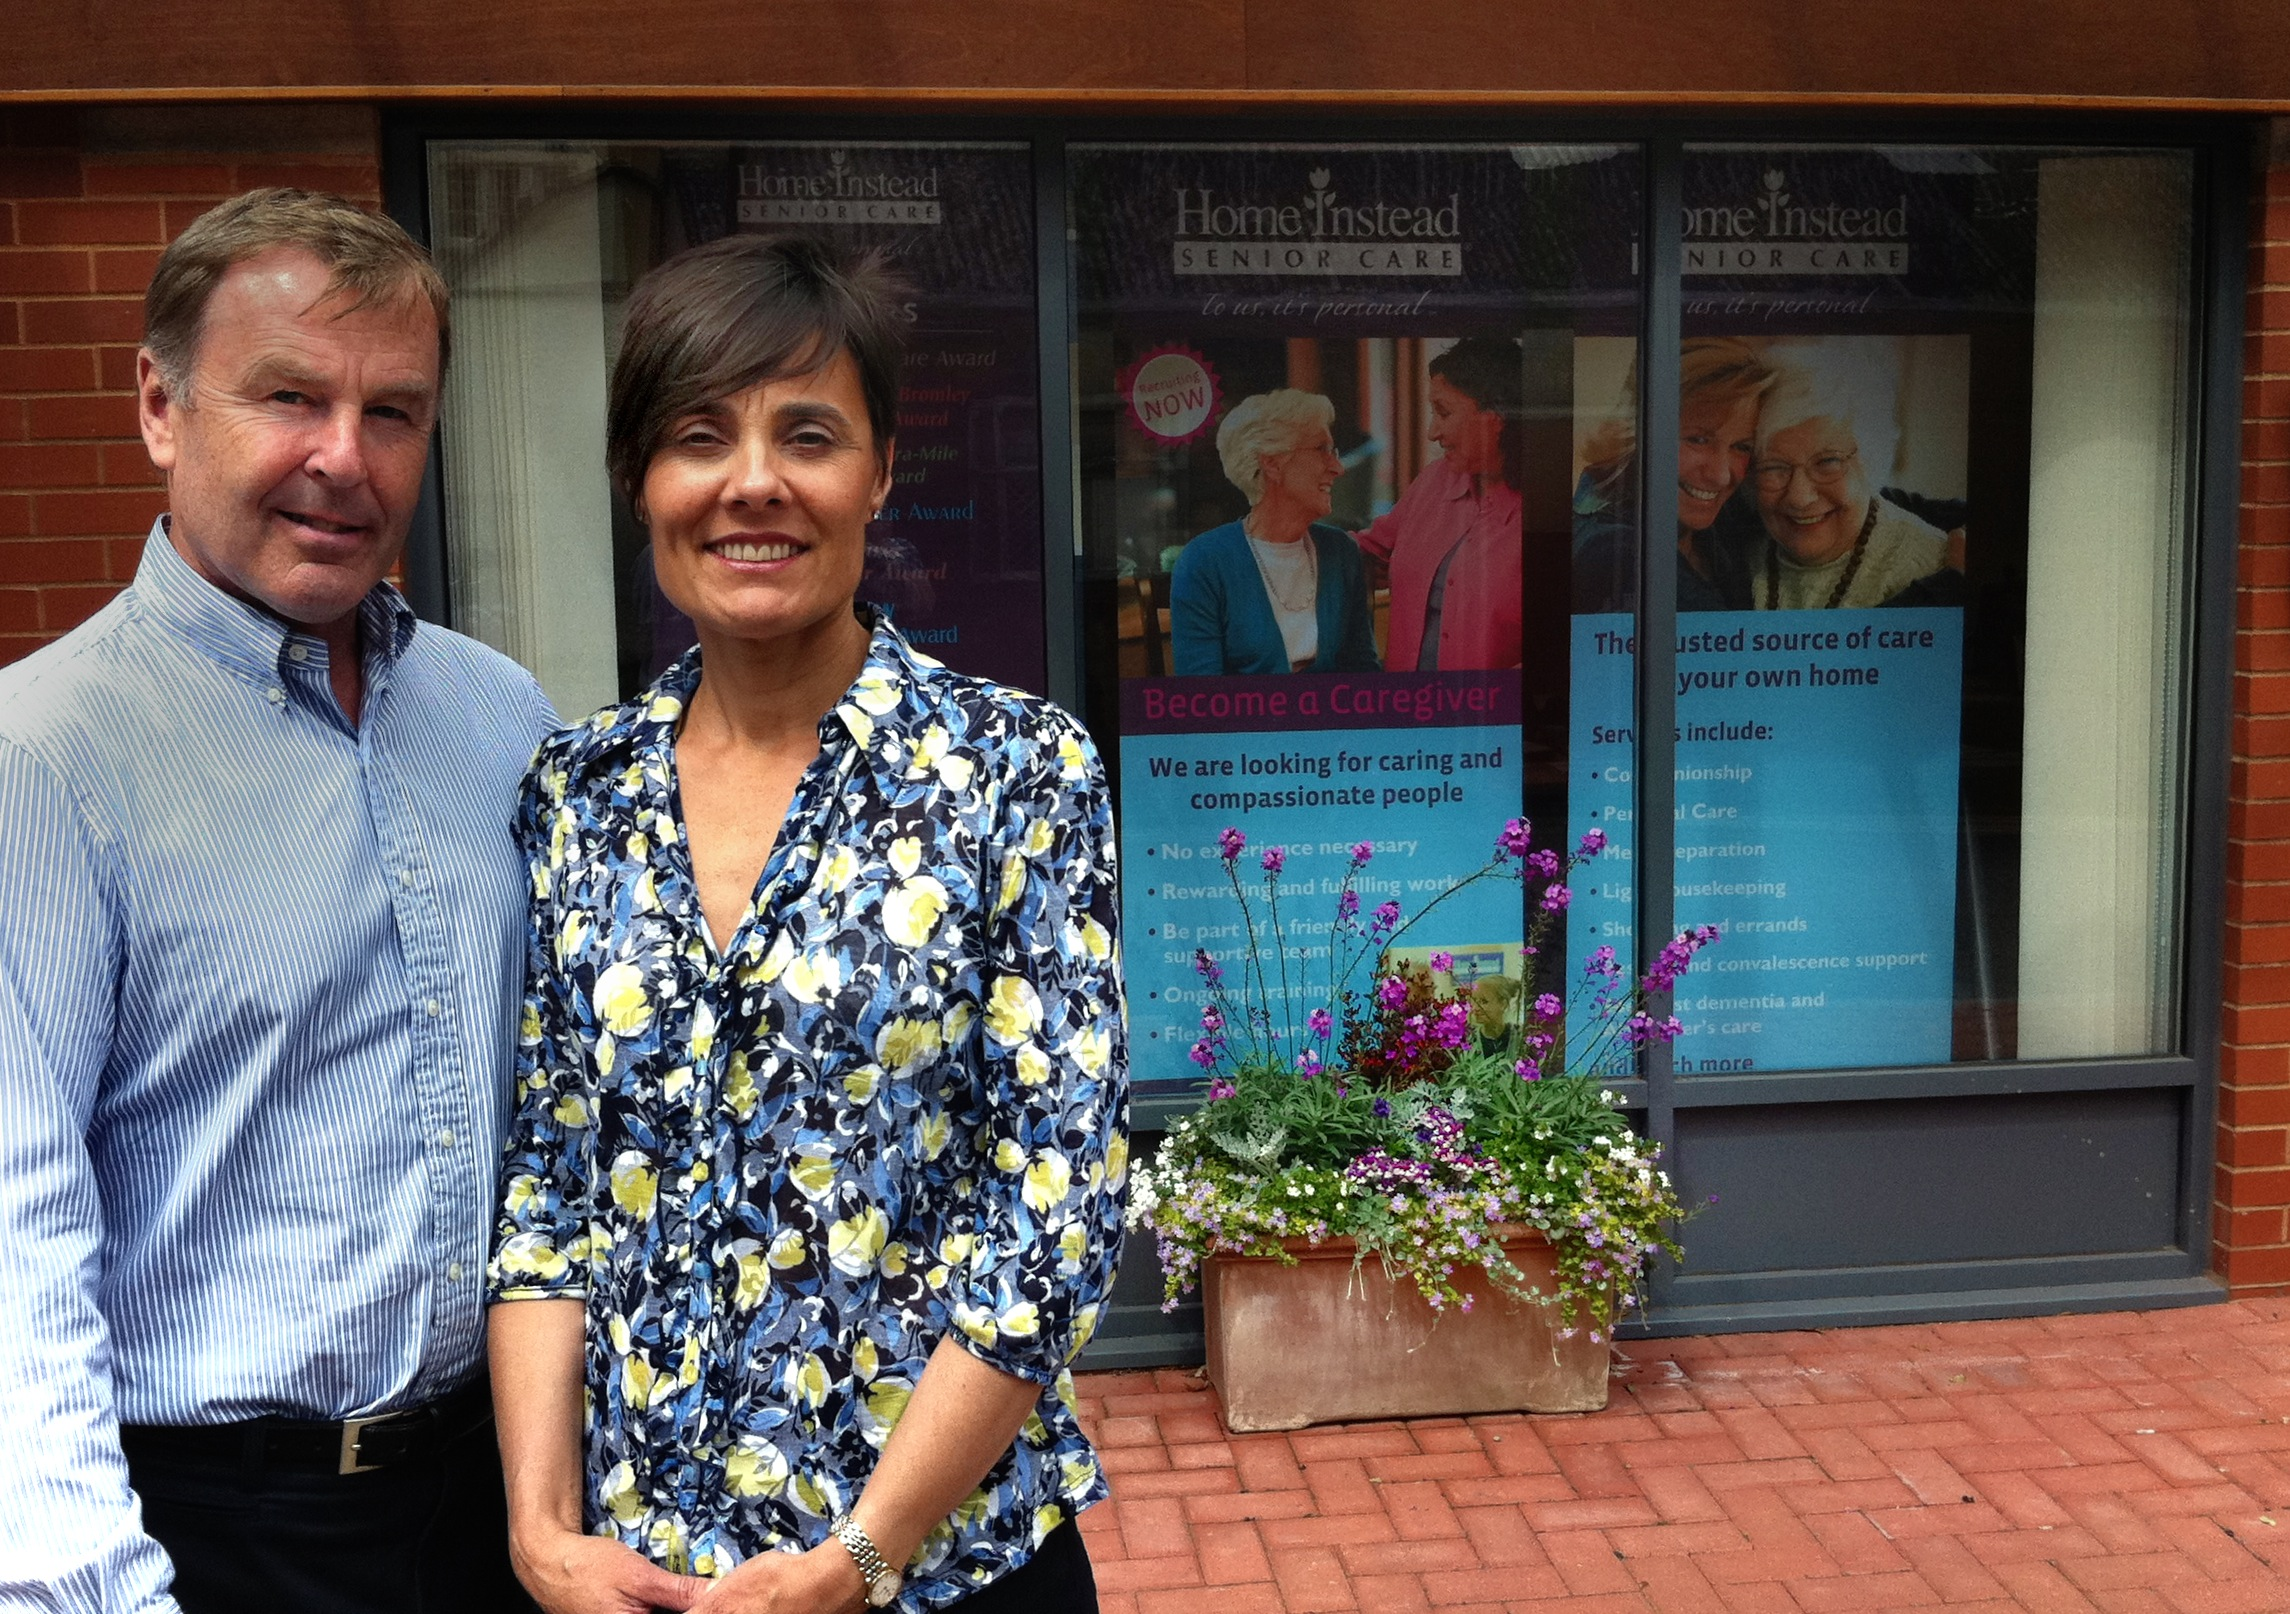 Home Instead Senior Care Exeter and East Devon owners Mark and Vanessa McGlade